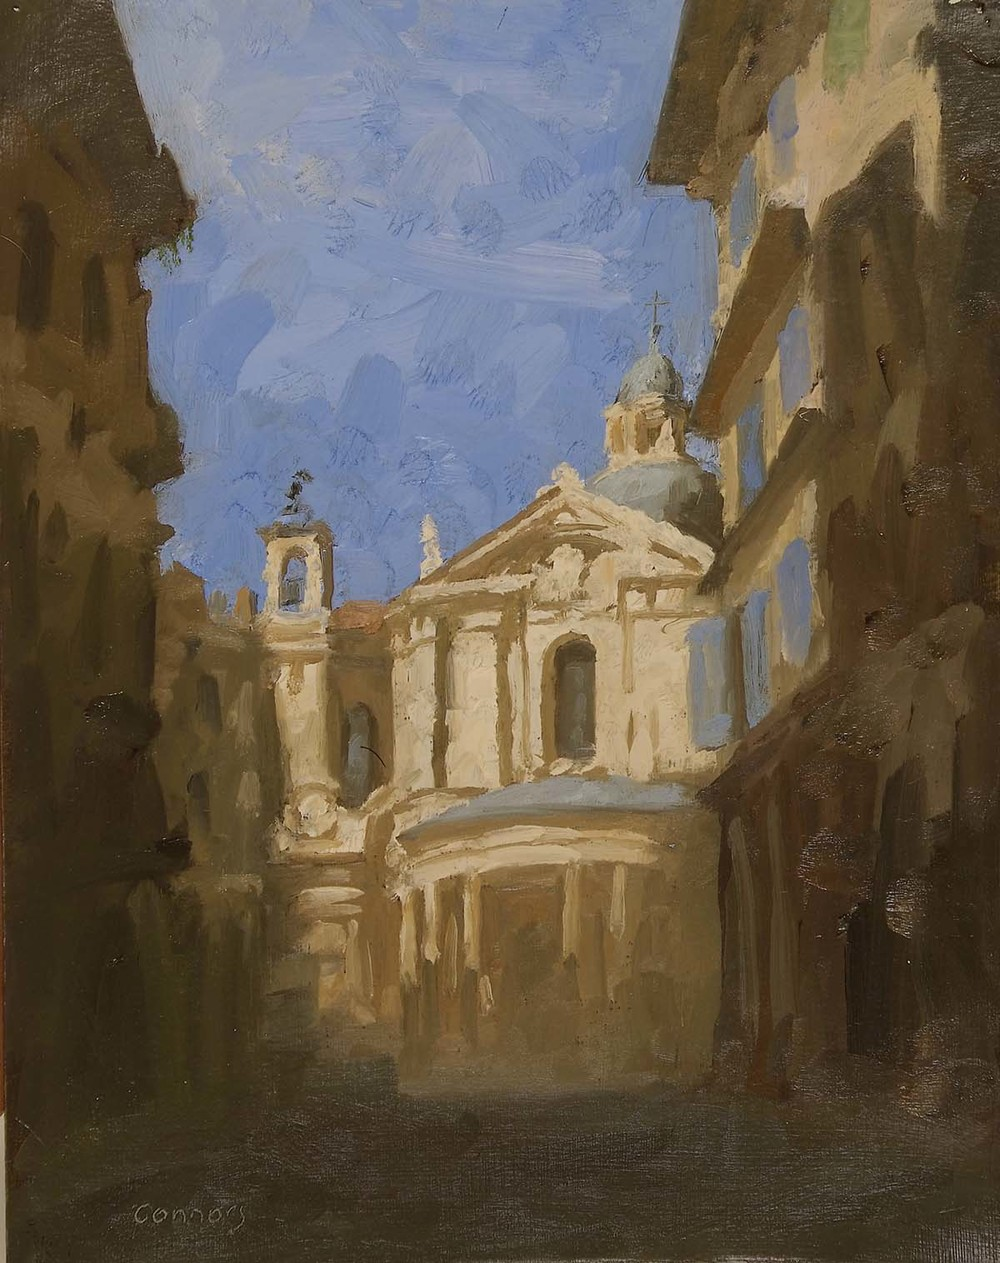 Santa Maria della Pace, 12 x 9.5 inches, oil on prepared paper